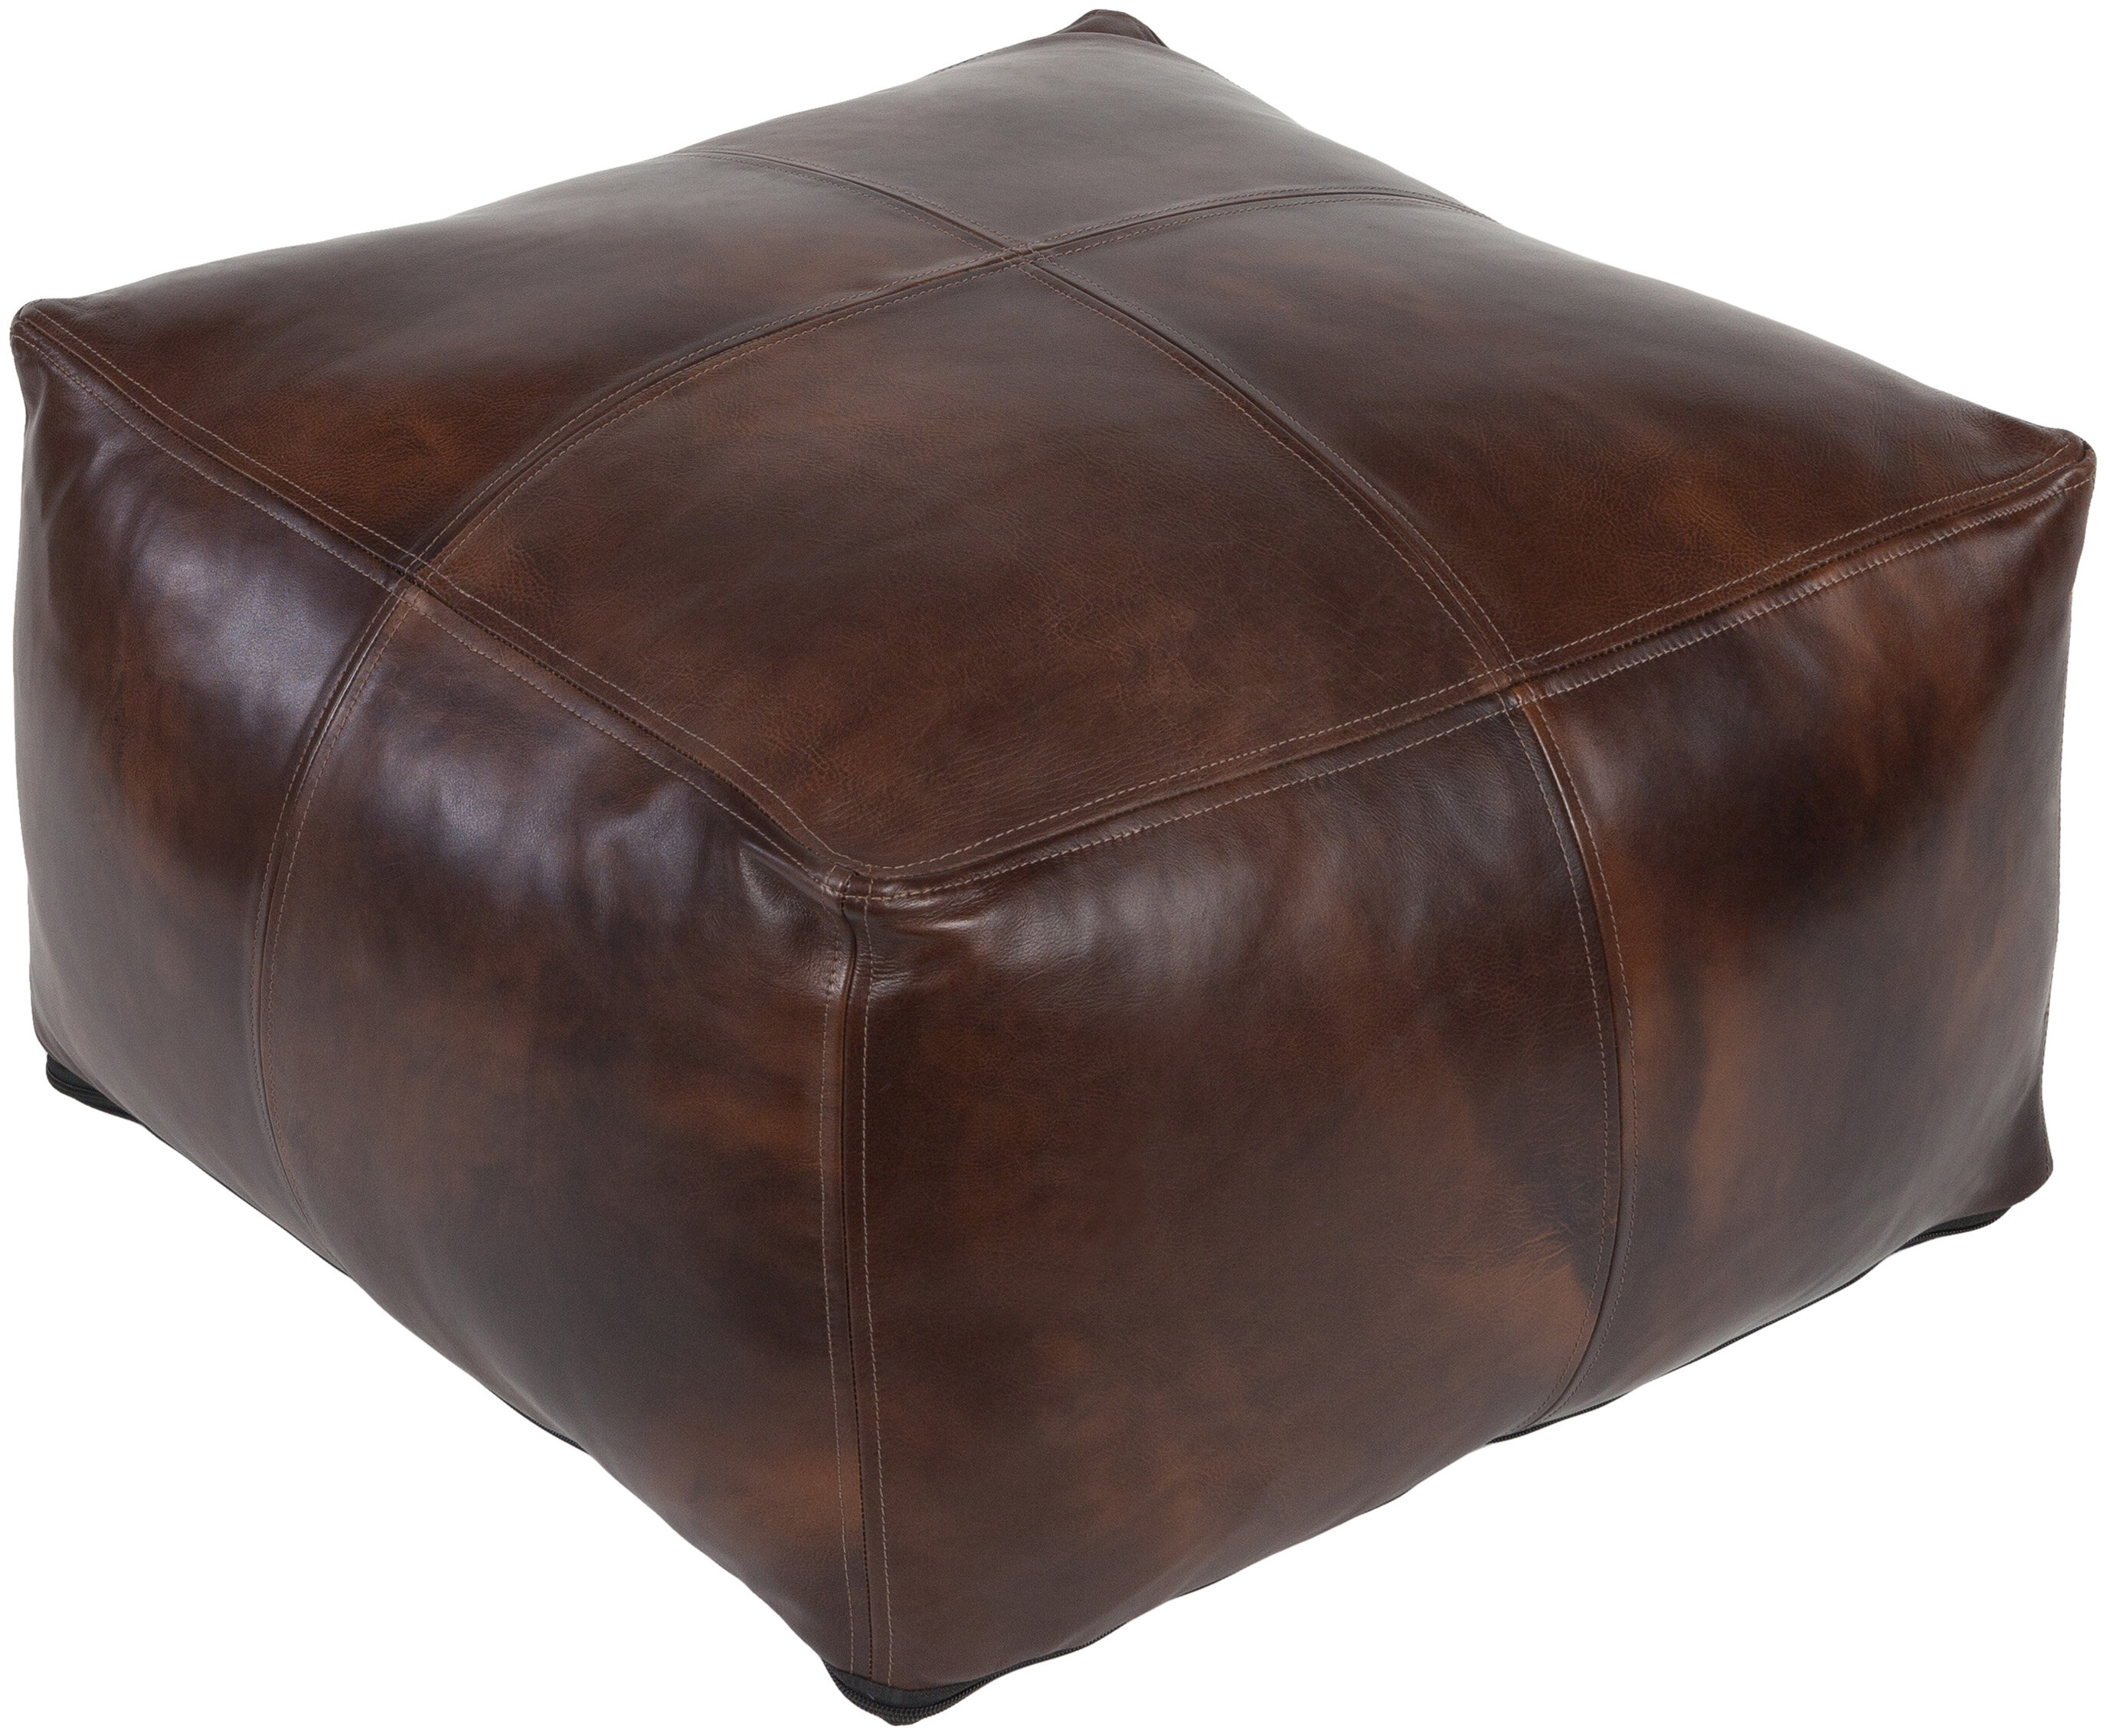 Brower 22 Leather Square Pouf Reviews Allmodern